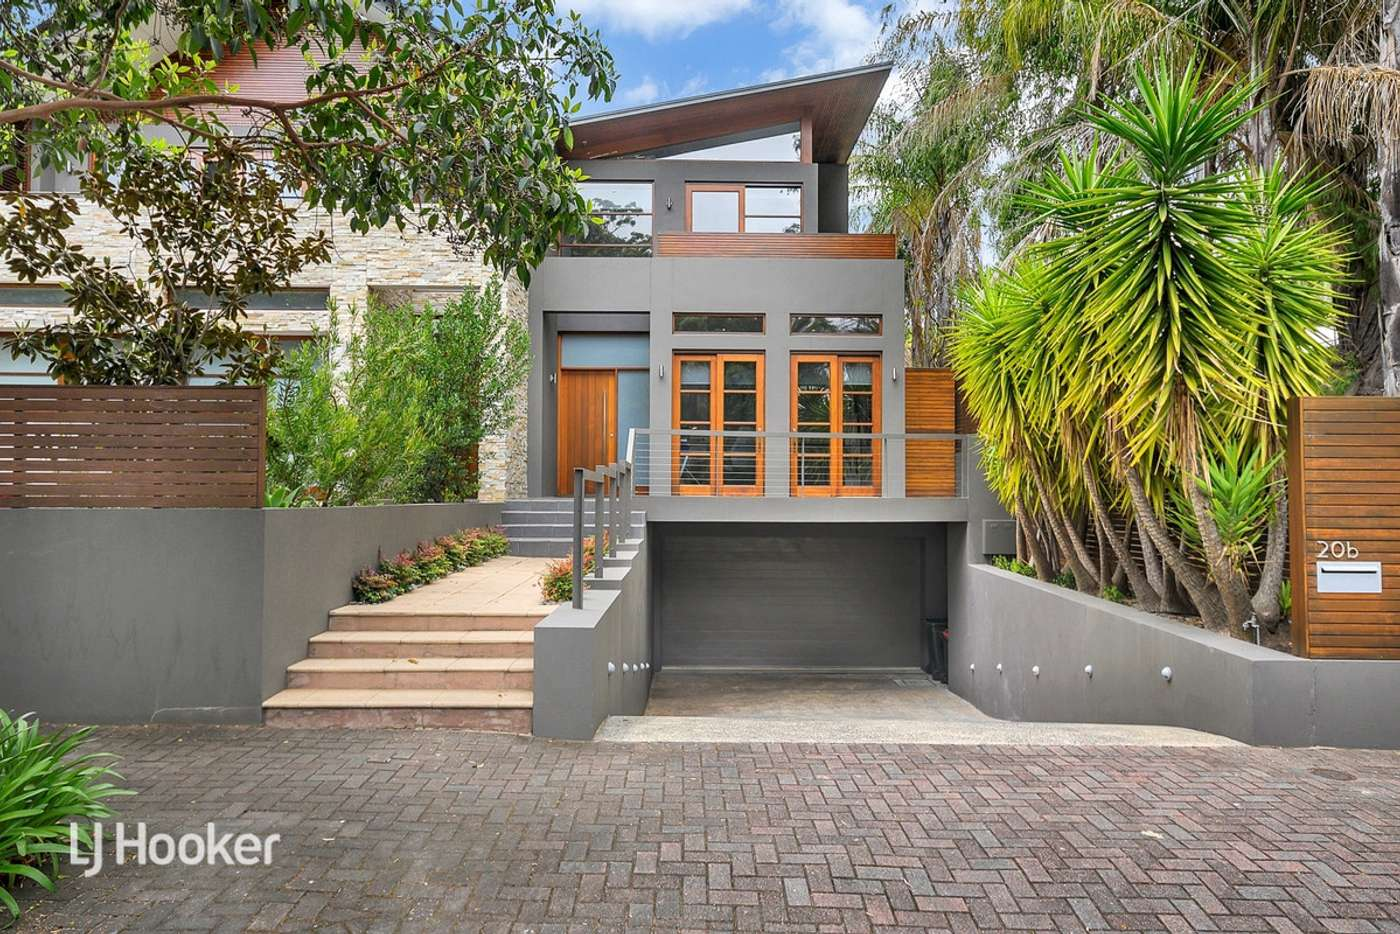 Main view of Homely house listing, 20B Gertrude Street, Norwood SA 5067